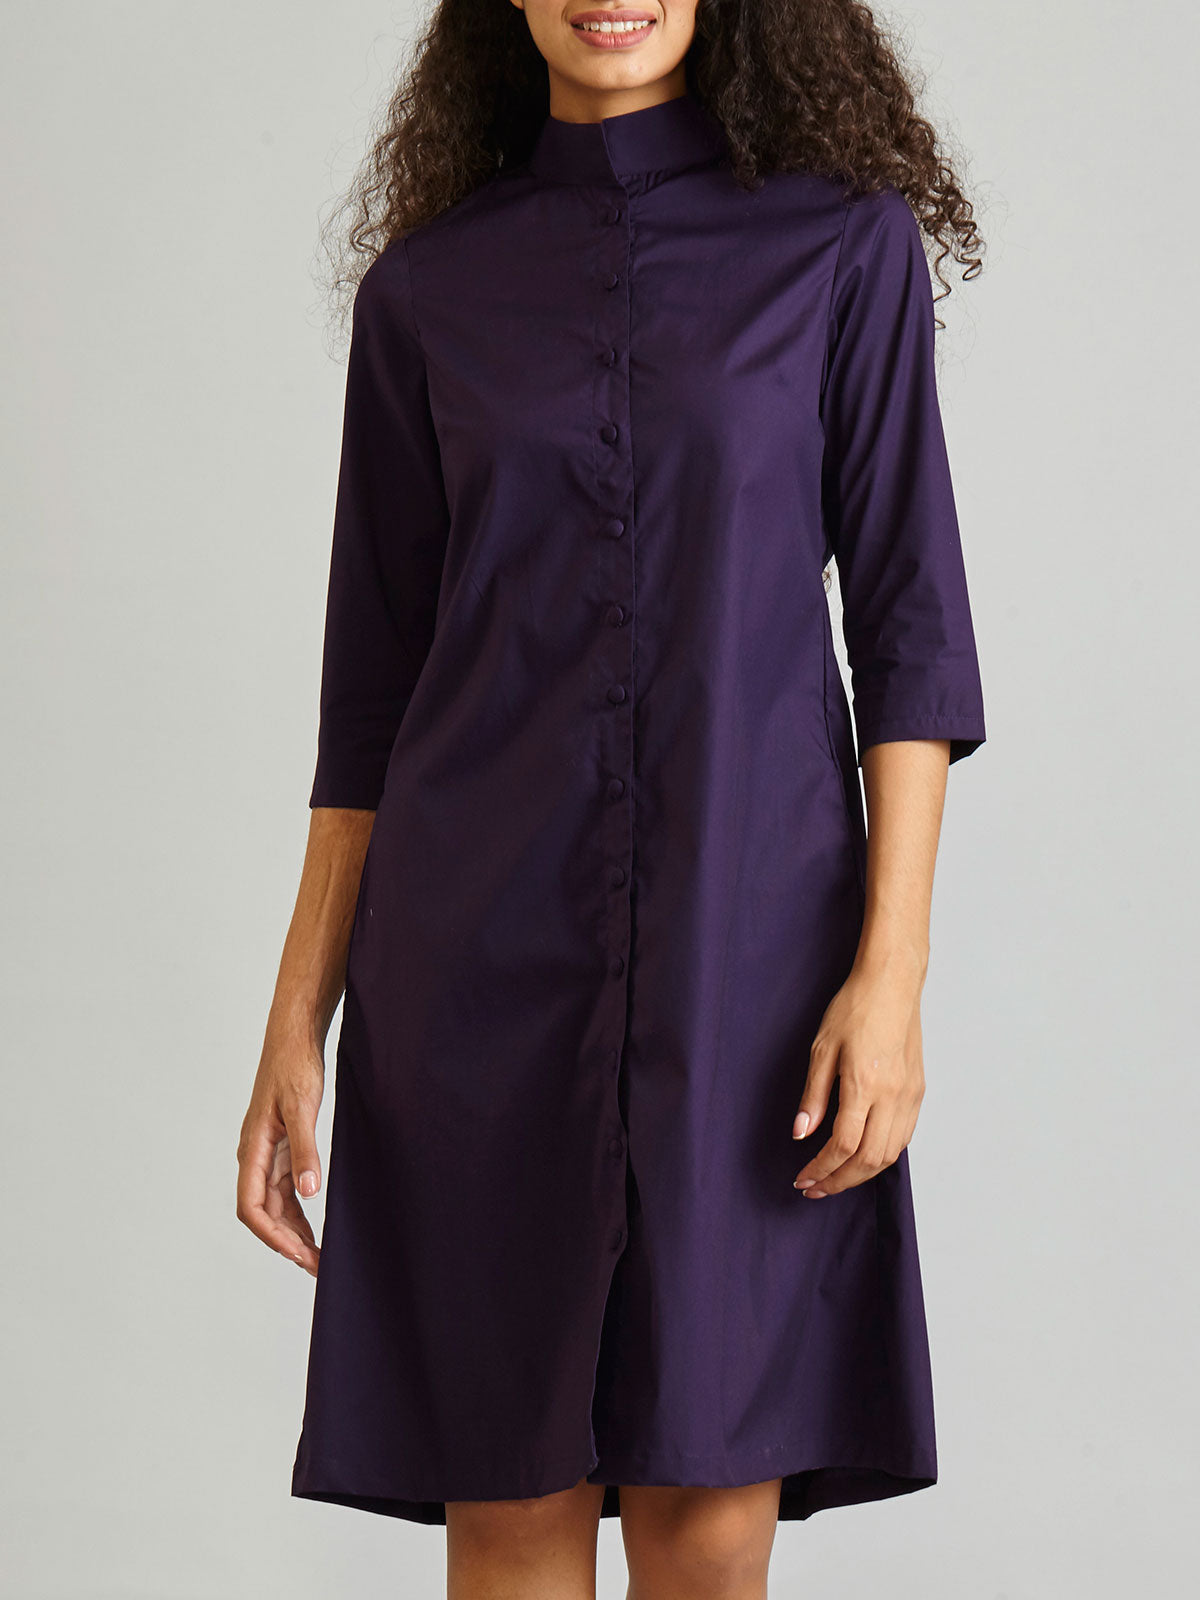 Poplin Shirt Dress - Blackcurrant